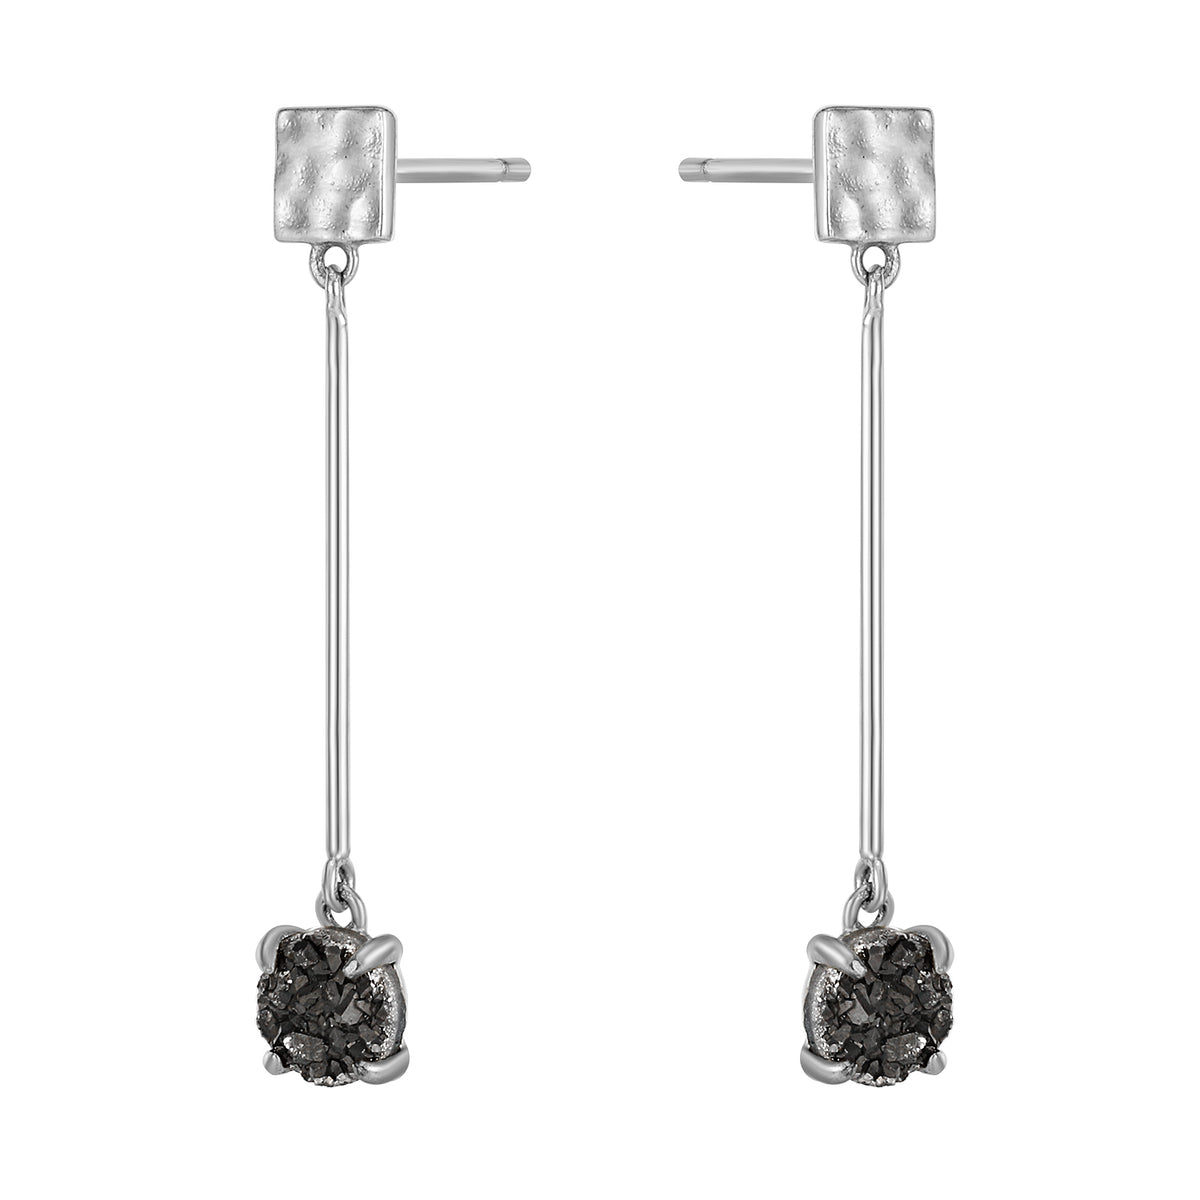 Fortuna| Iris Earrings 925 Silver | Grey Agate | White Rhodium Plated